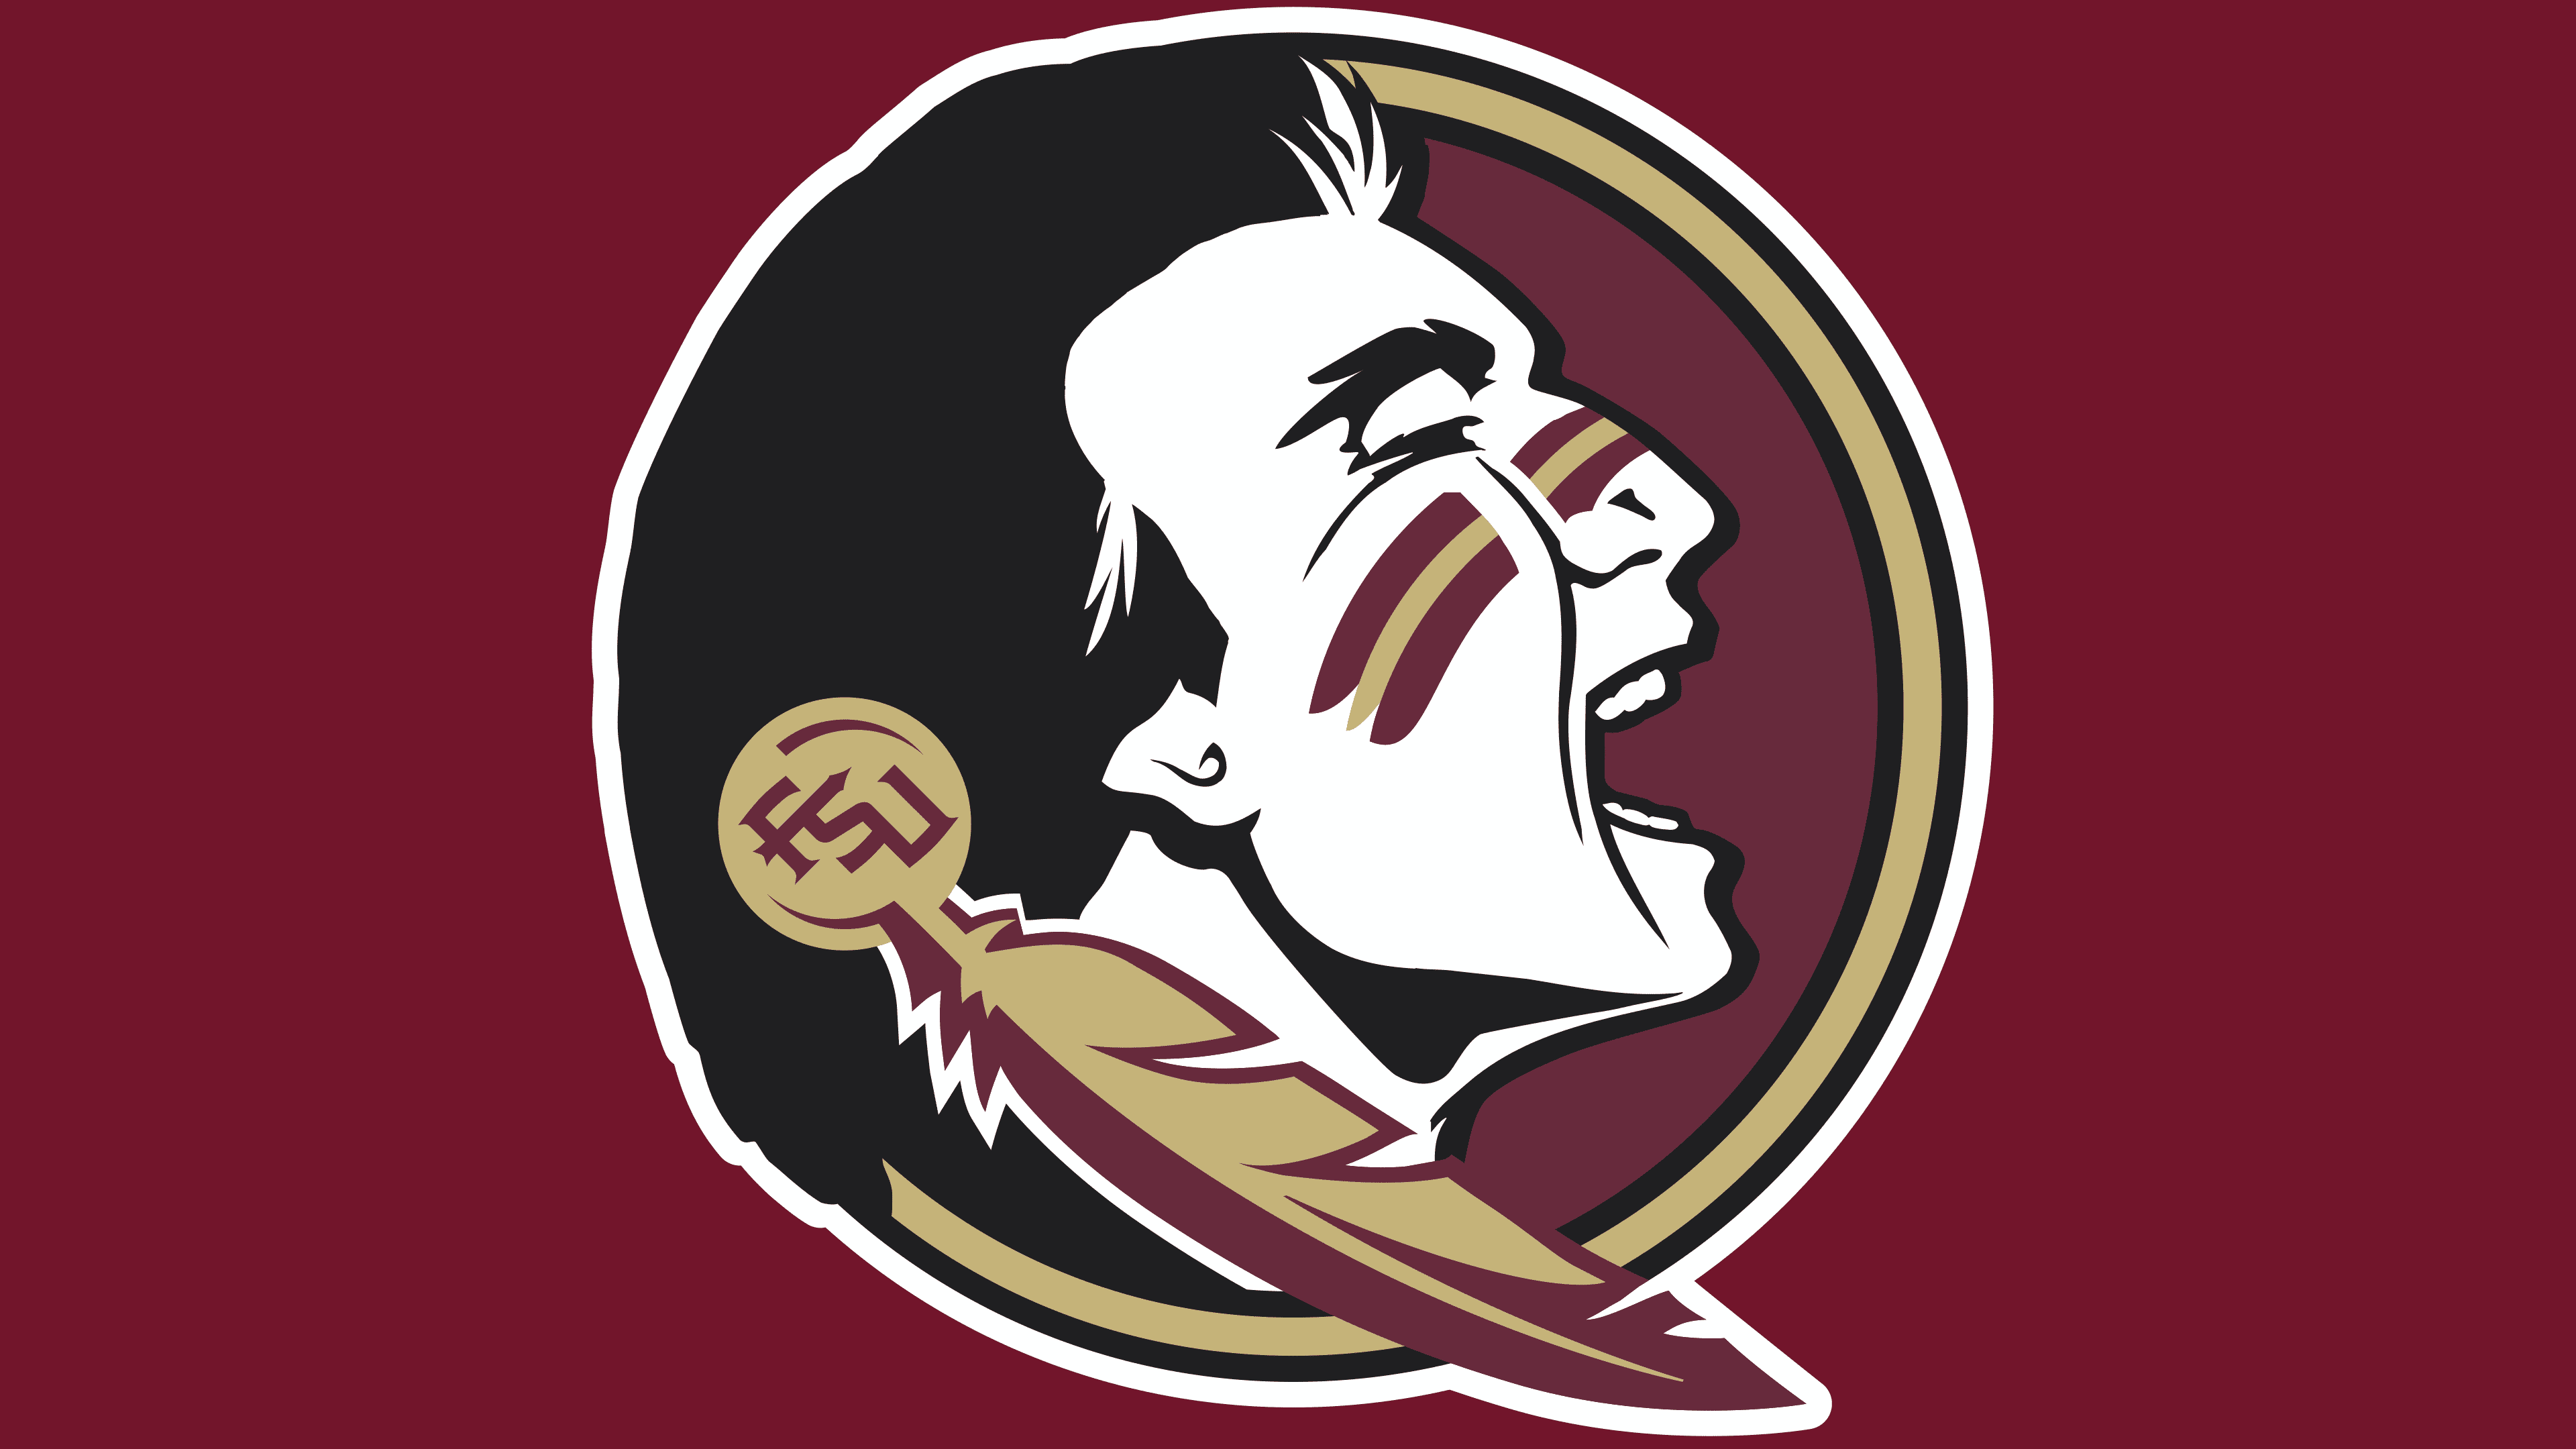 Florida State Seminoles Logo | The most famous brands and company logos in  the world